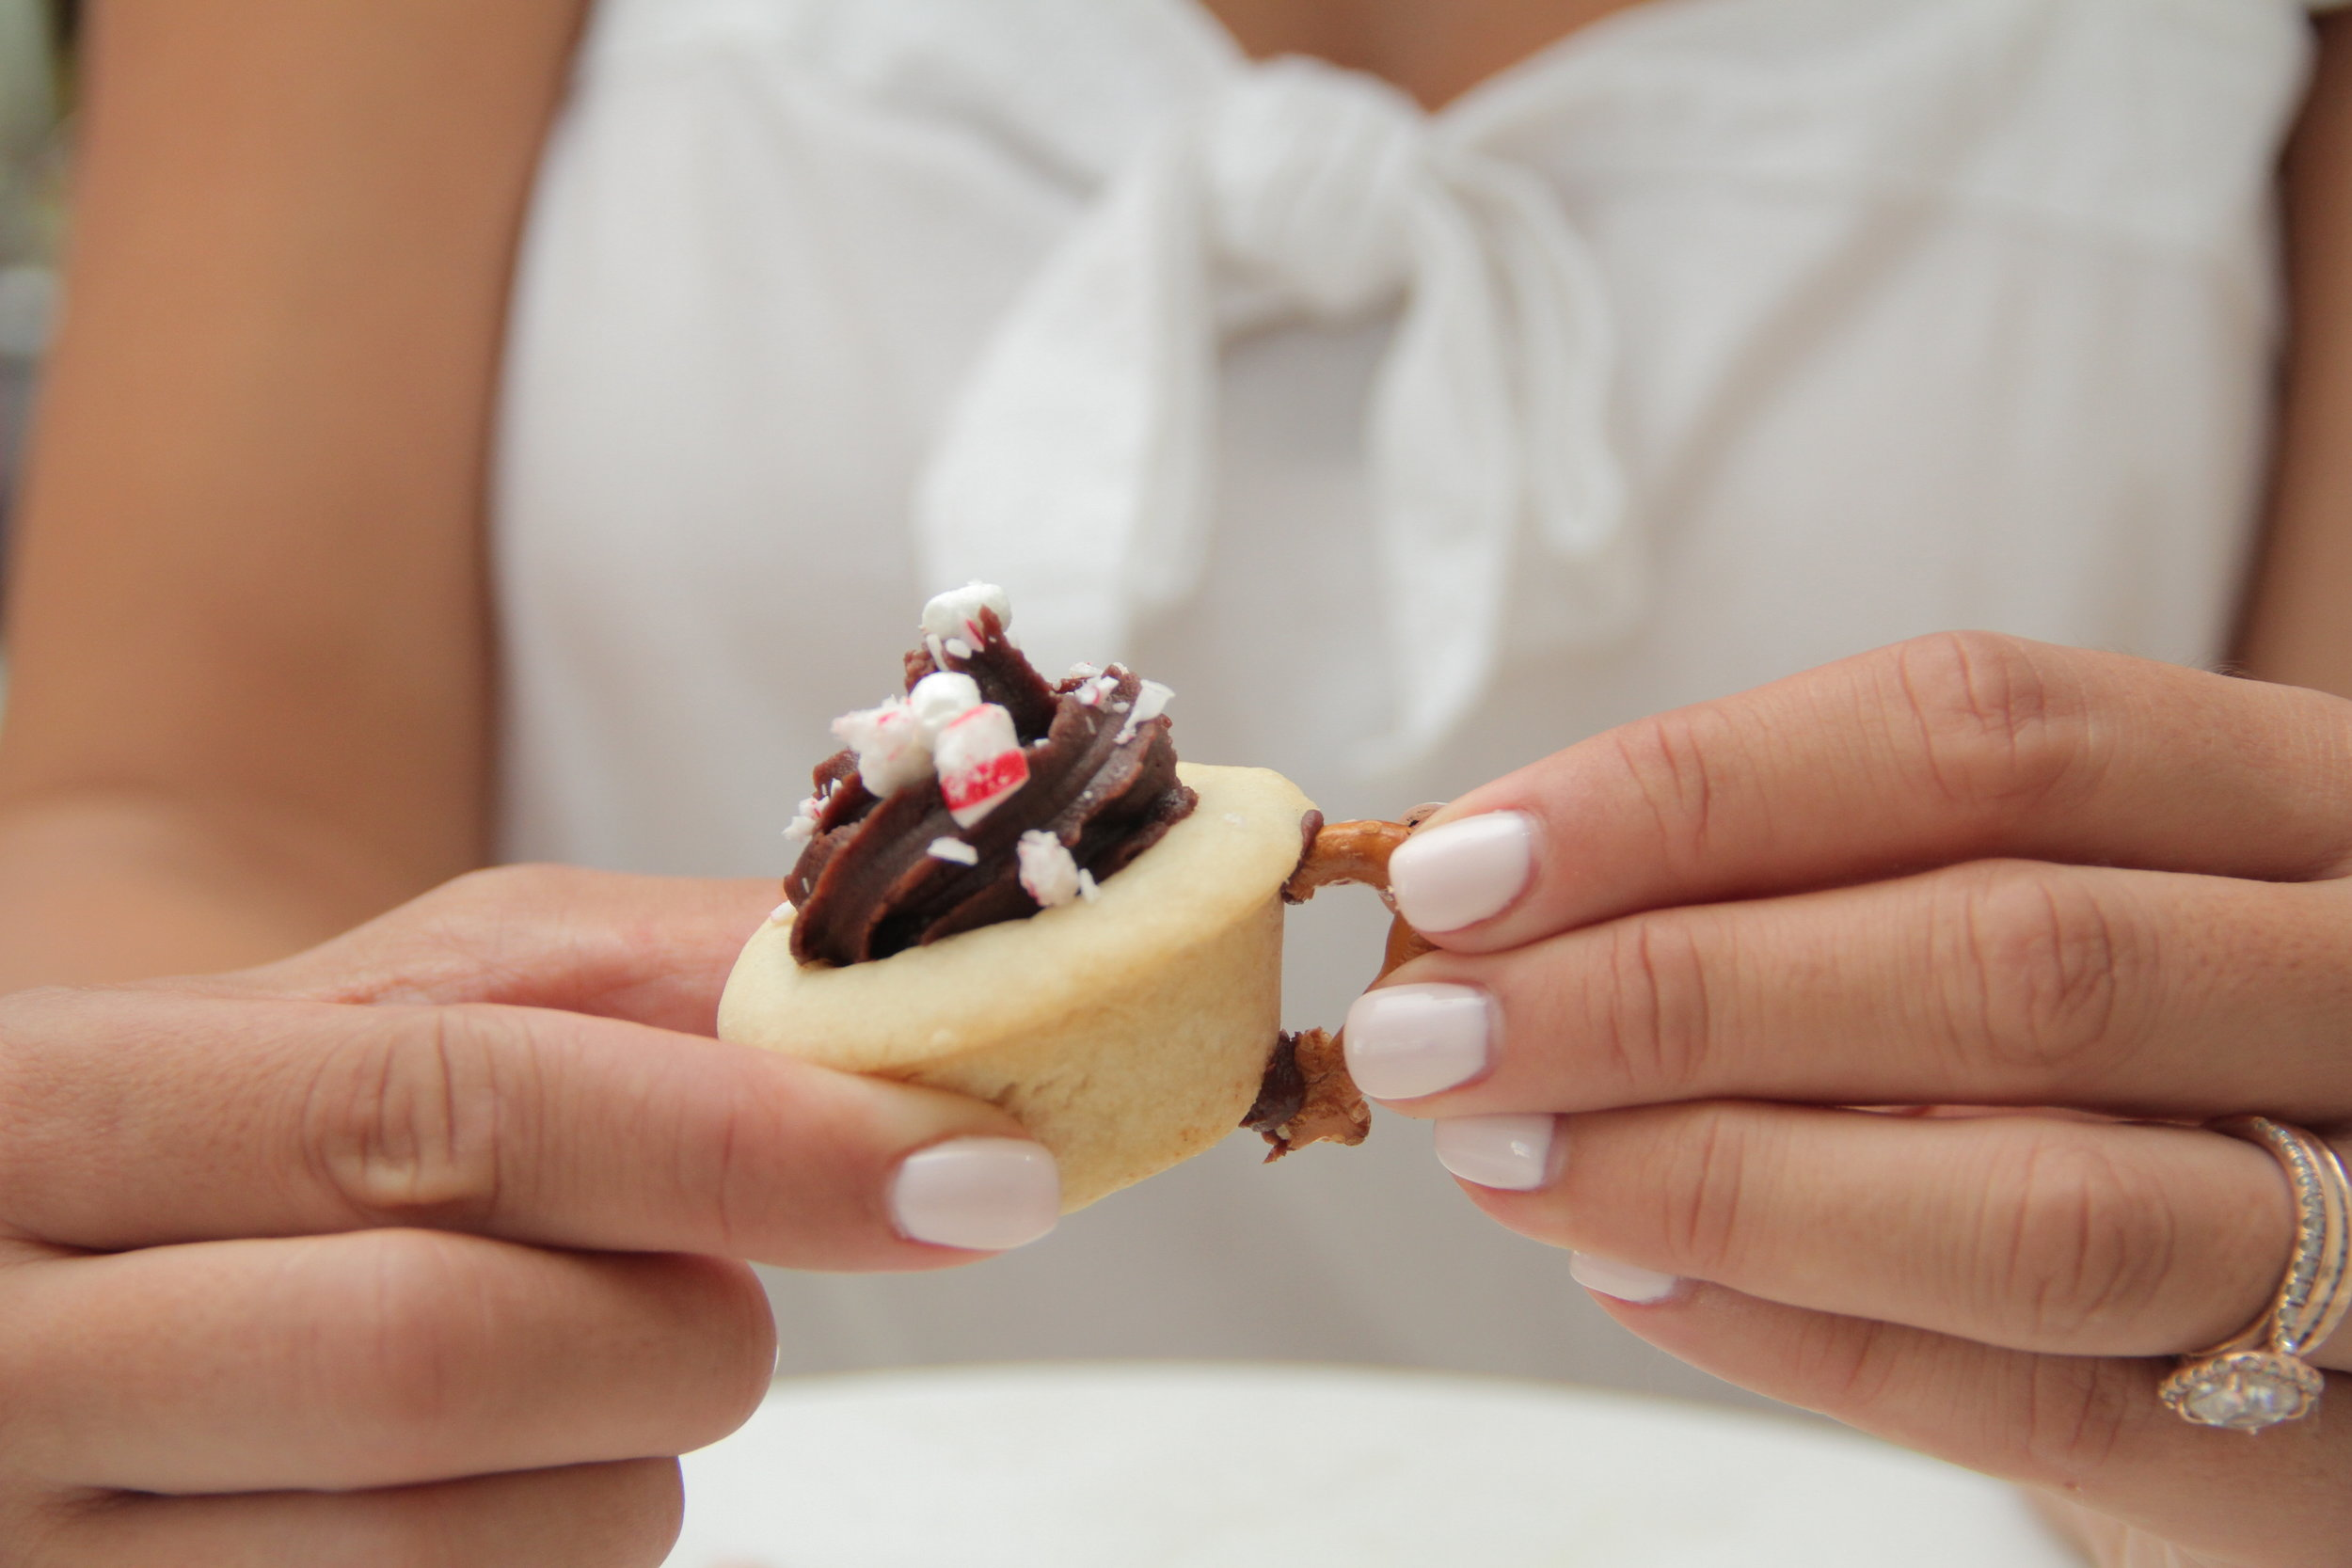 Press on the side of your cookie cup and hold to set